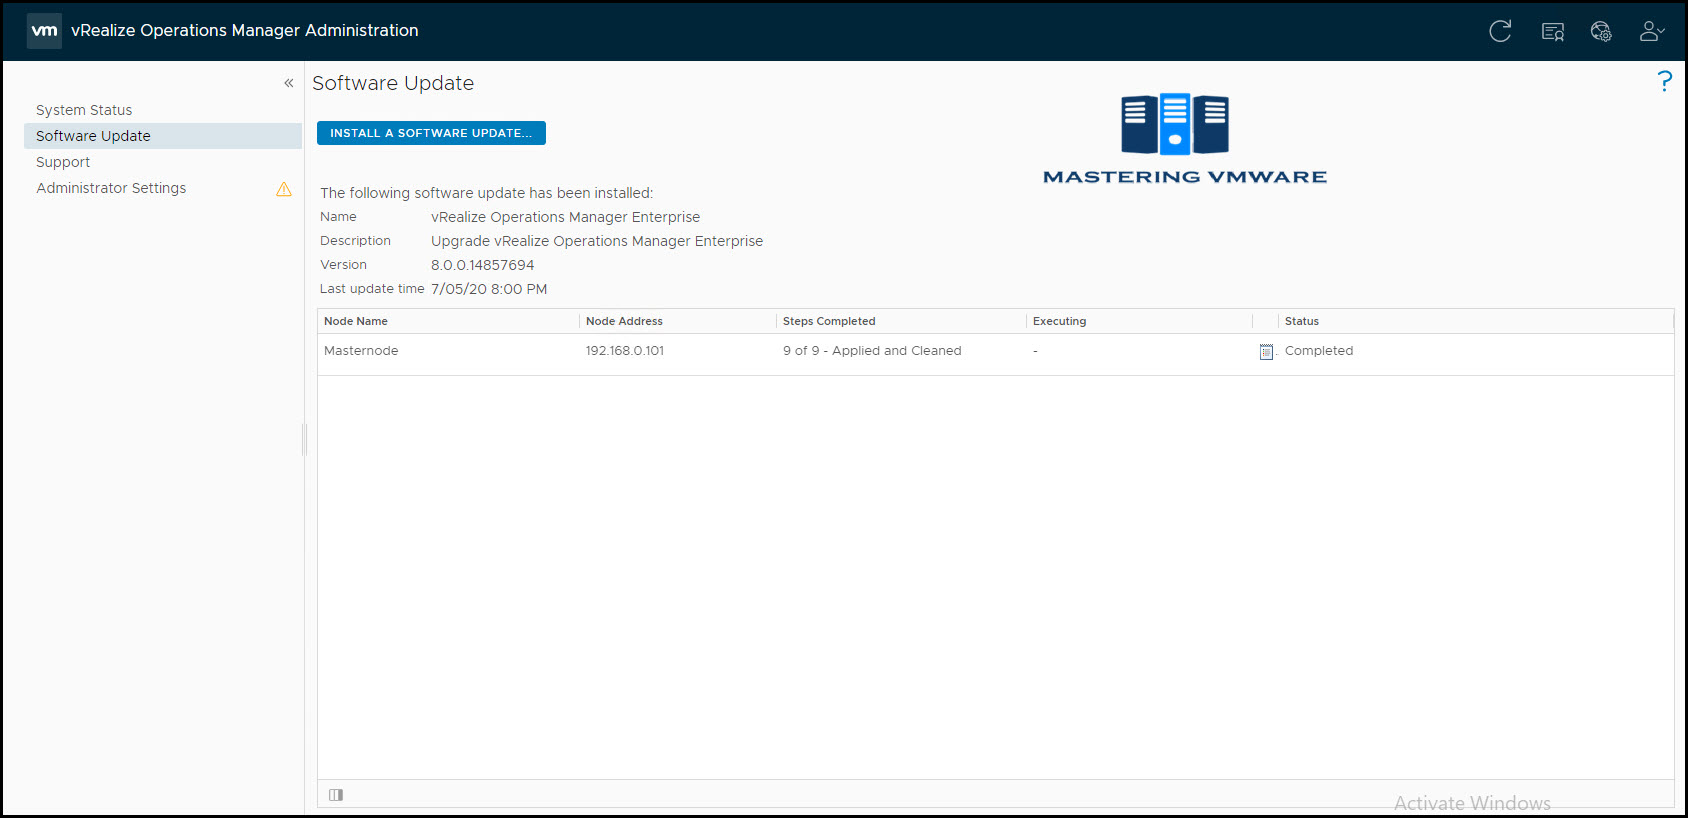 vrealize operations manager upgrade